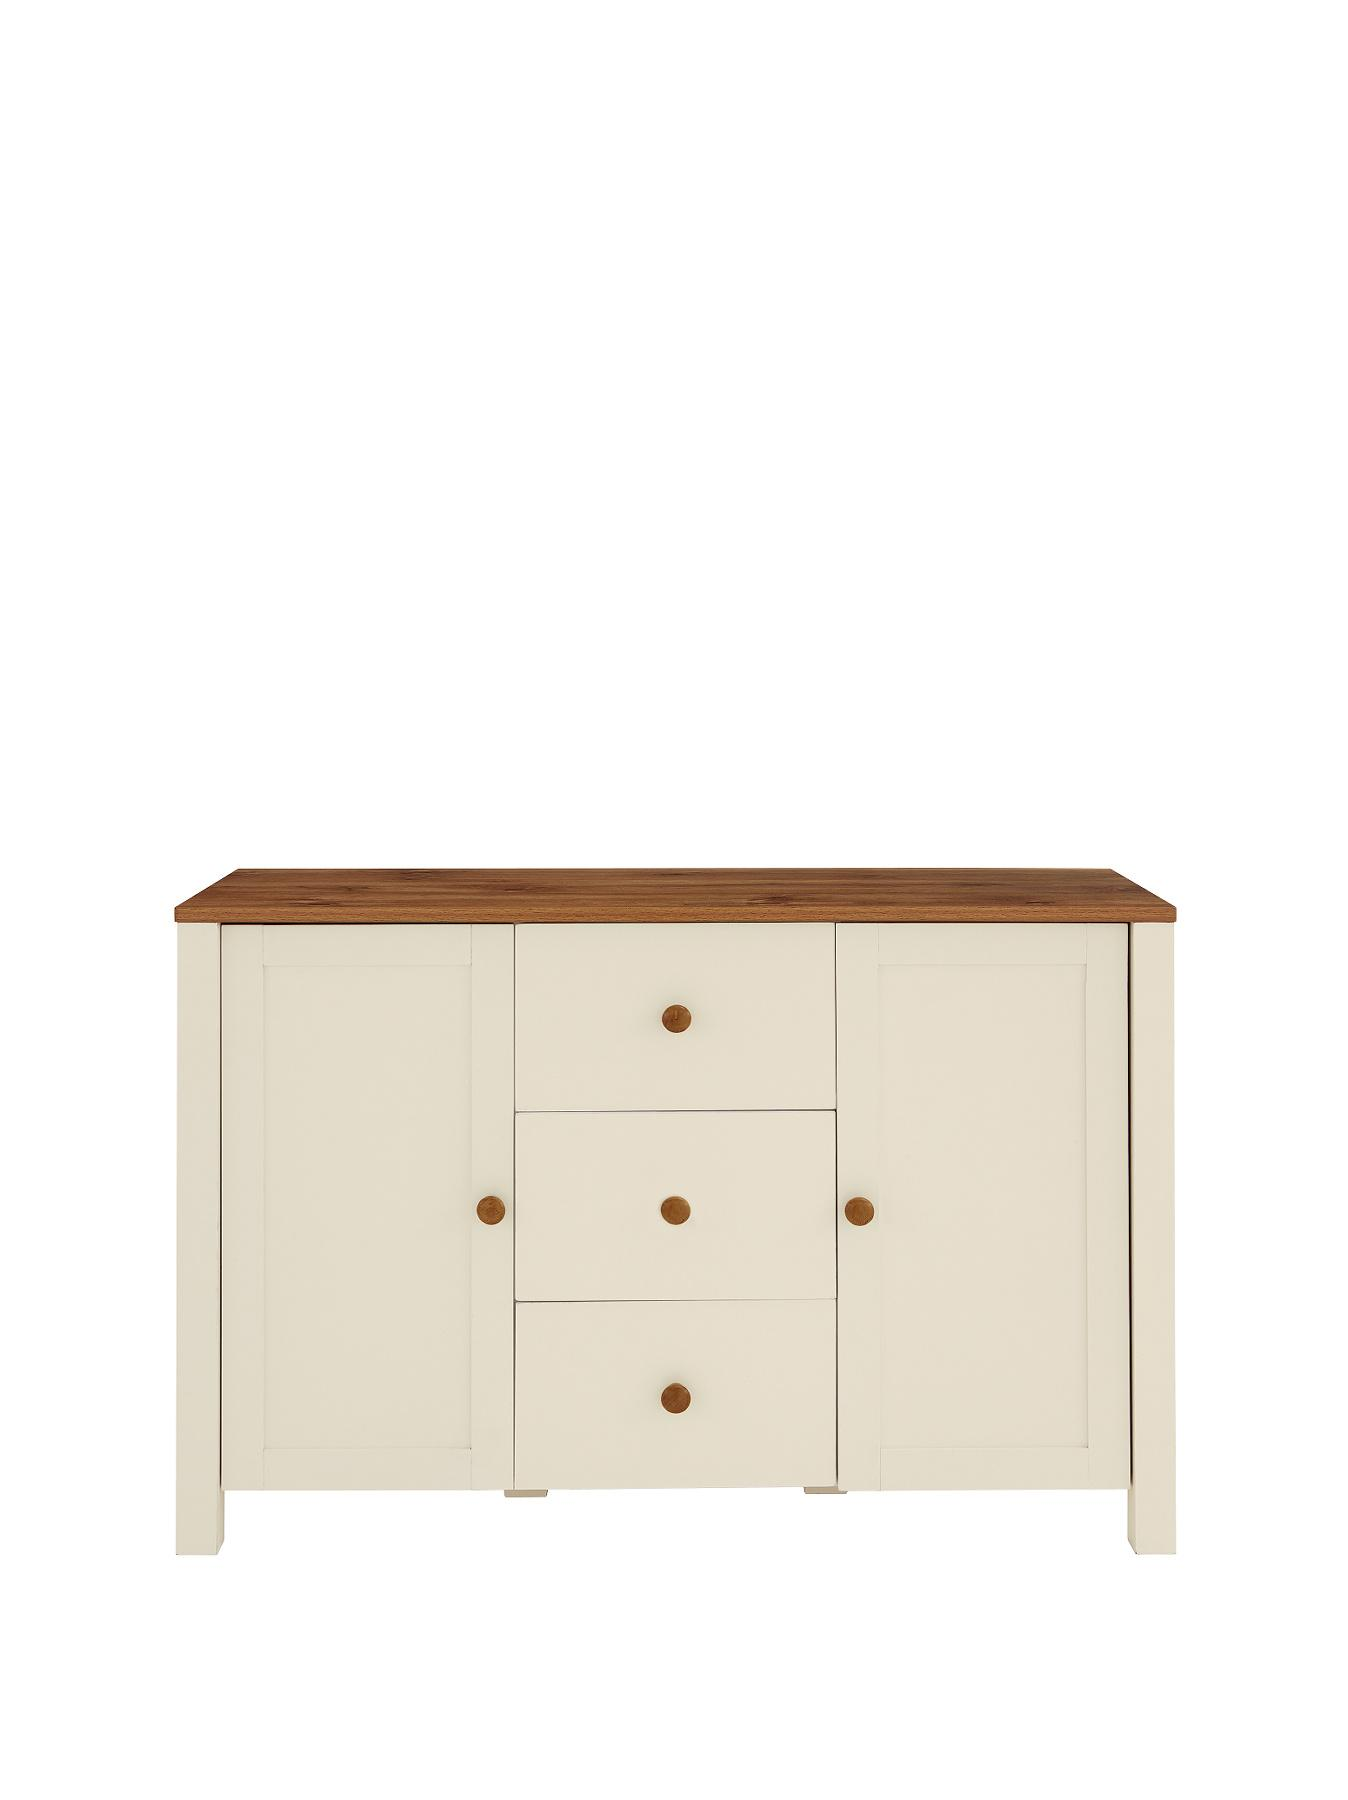 New Westminster 2-Door, 3-Drawer Sideboard - Cream, Cream